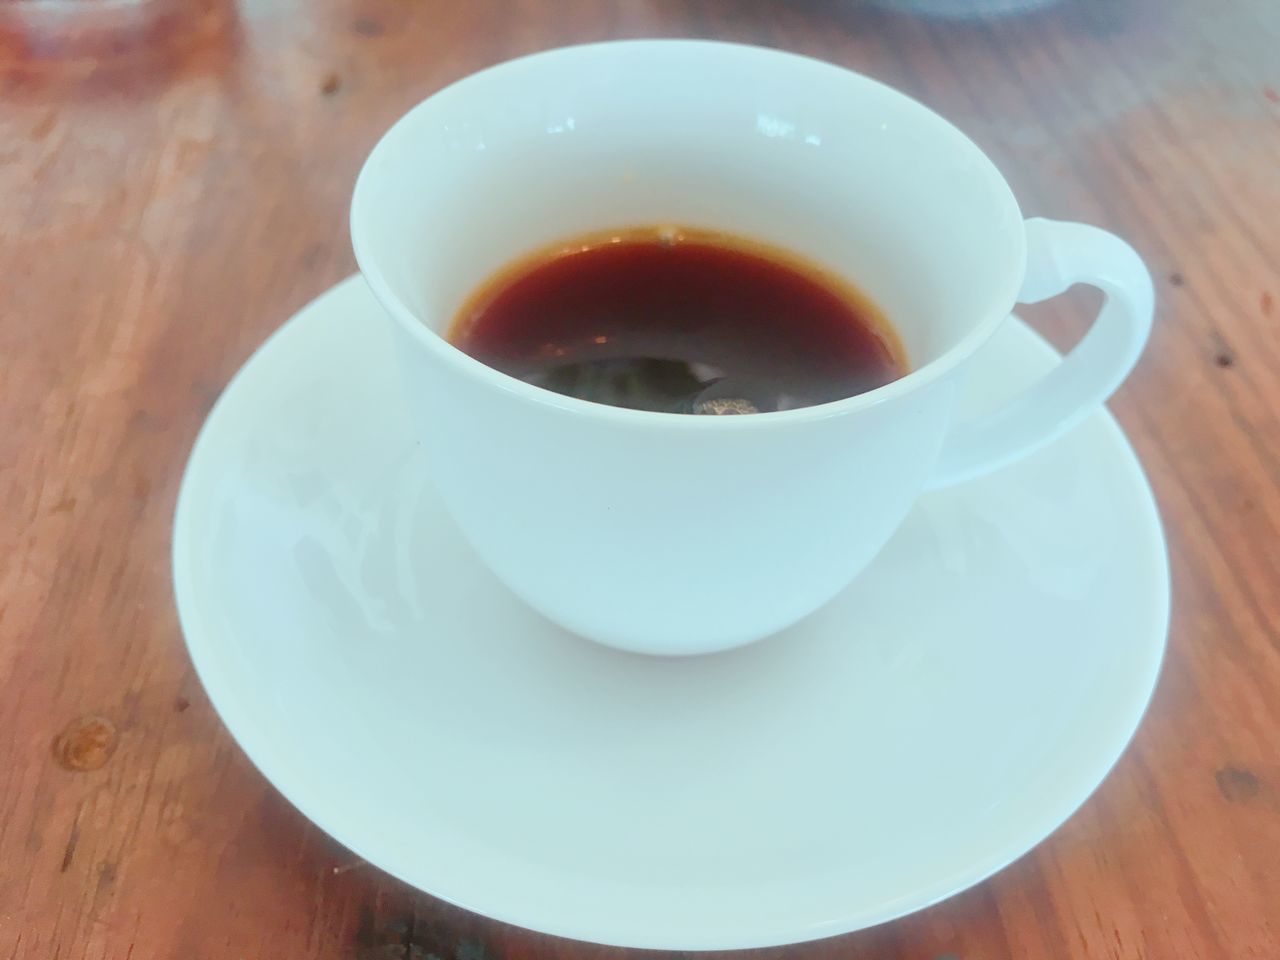 drink, refreshment, food and drink, saucer, table, indoors, freshness, no people, close-up, tea - hot drink, healthy eating, day